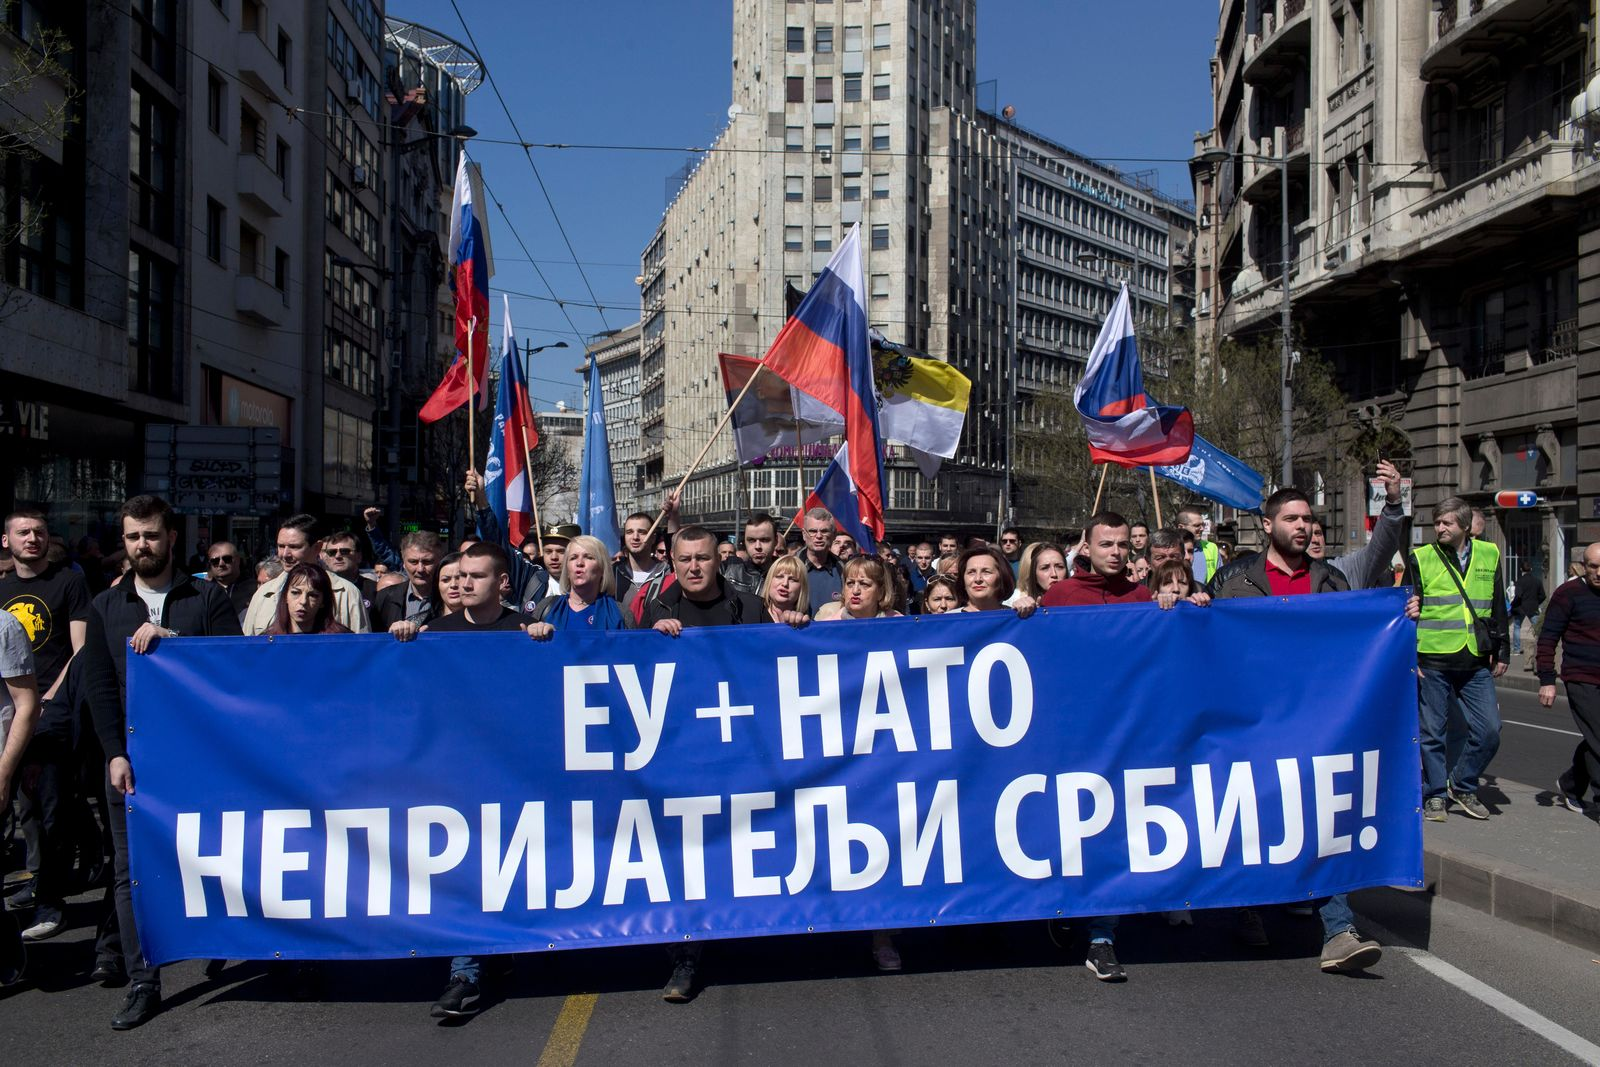 Supporters of the ultranationalist Serbian Radical Party march down a street during a protest in Belgrade, Serbia, Sunday, March 24, 2019. (AP Photo/Marko Drobnjakovic)